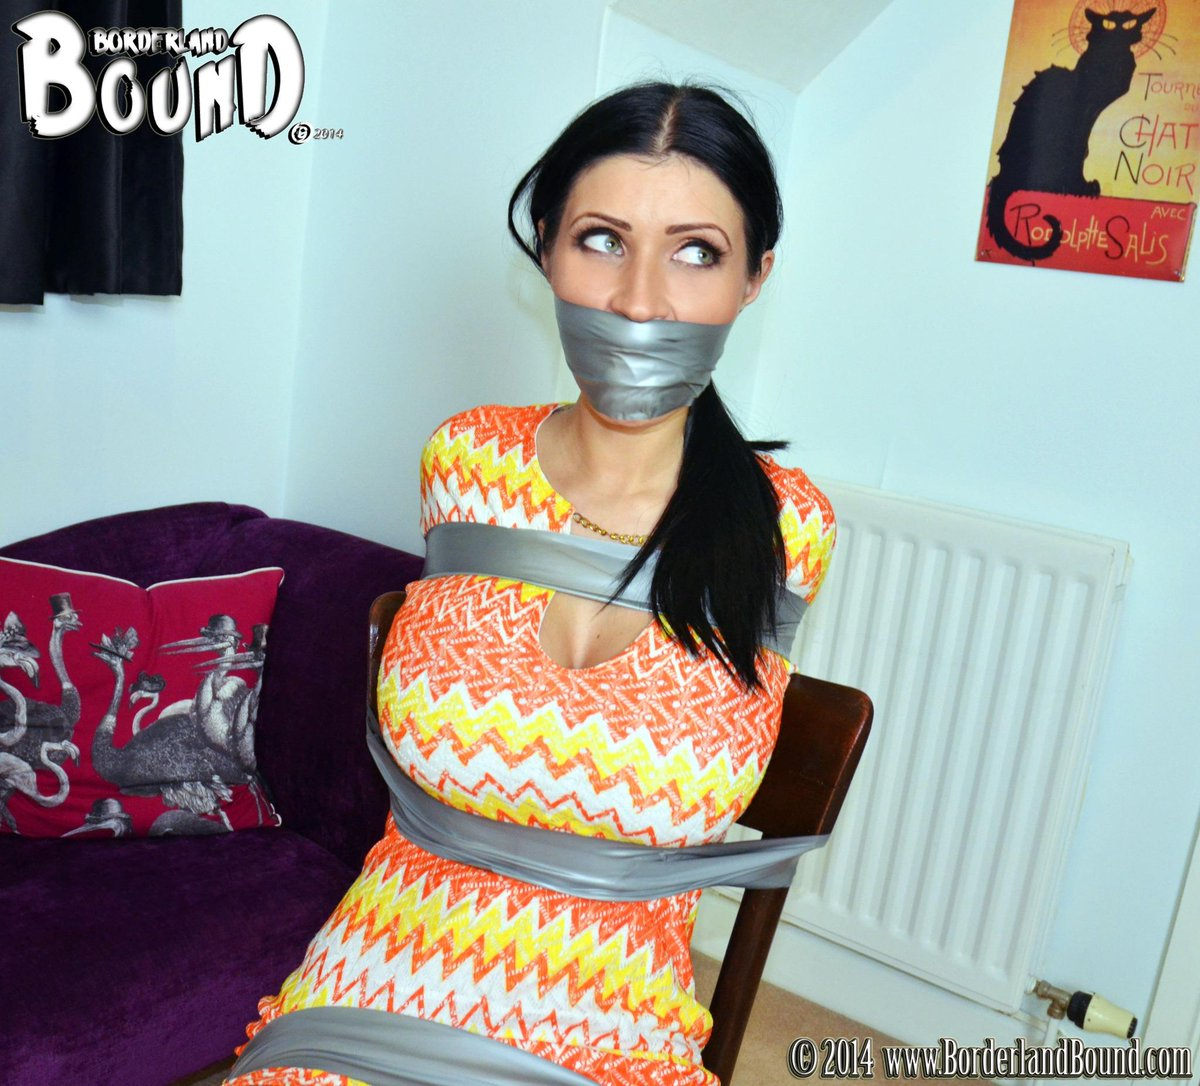 BorderlandBound (@Borderland7): #Gorgeous @Lillyroma1 is left #tapebound & #gaggedup #HARD at home! Will she escape?? #probablynot #butmuchfuntowatch http://t.co/2ItoZ6l5Zv